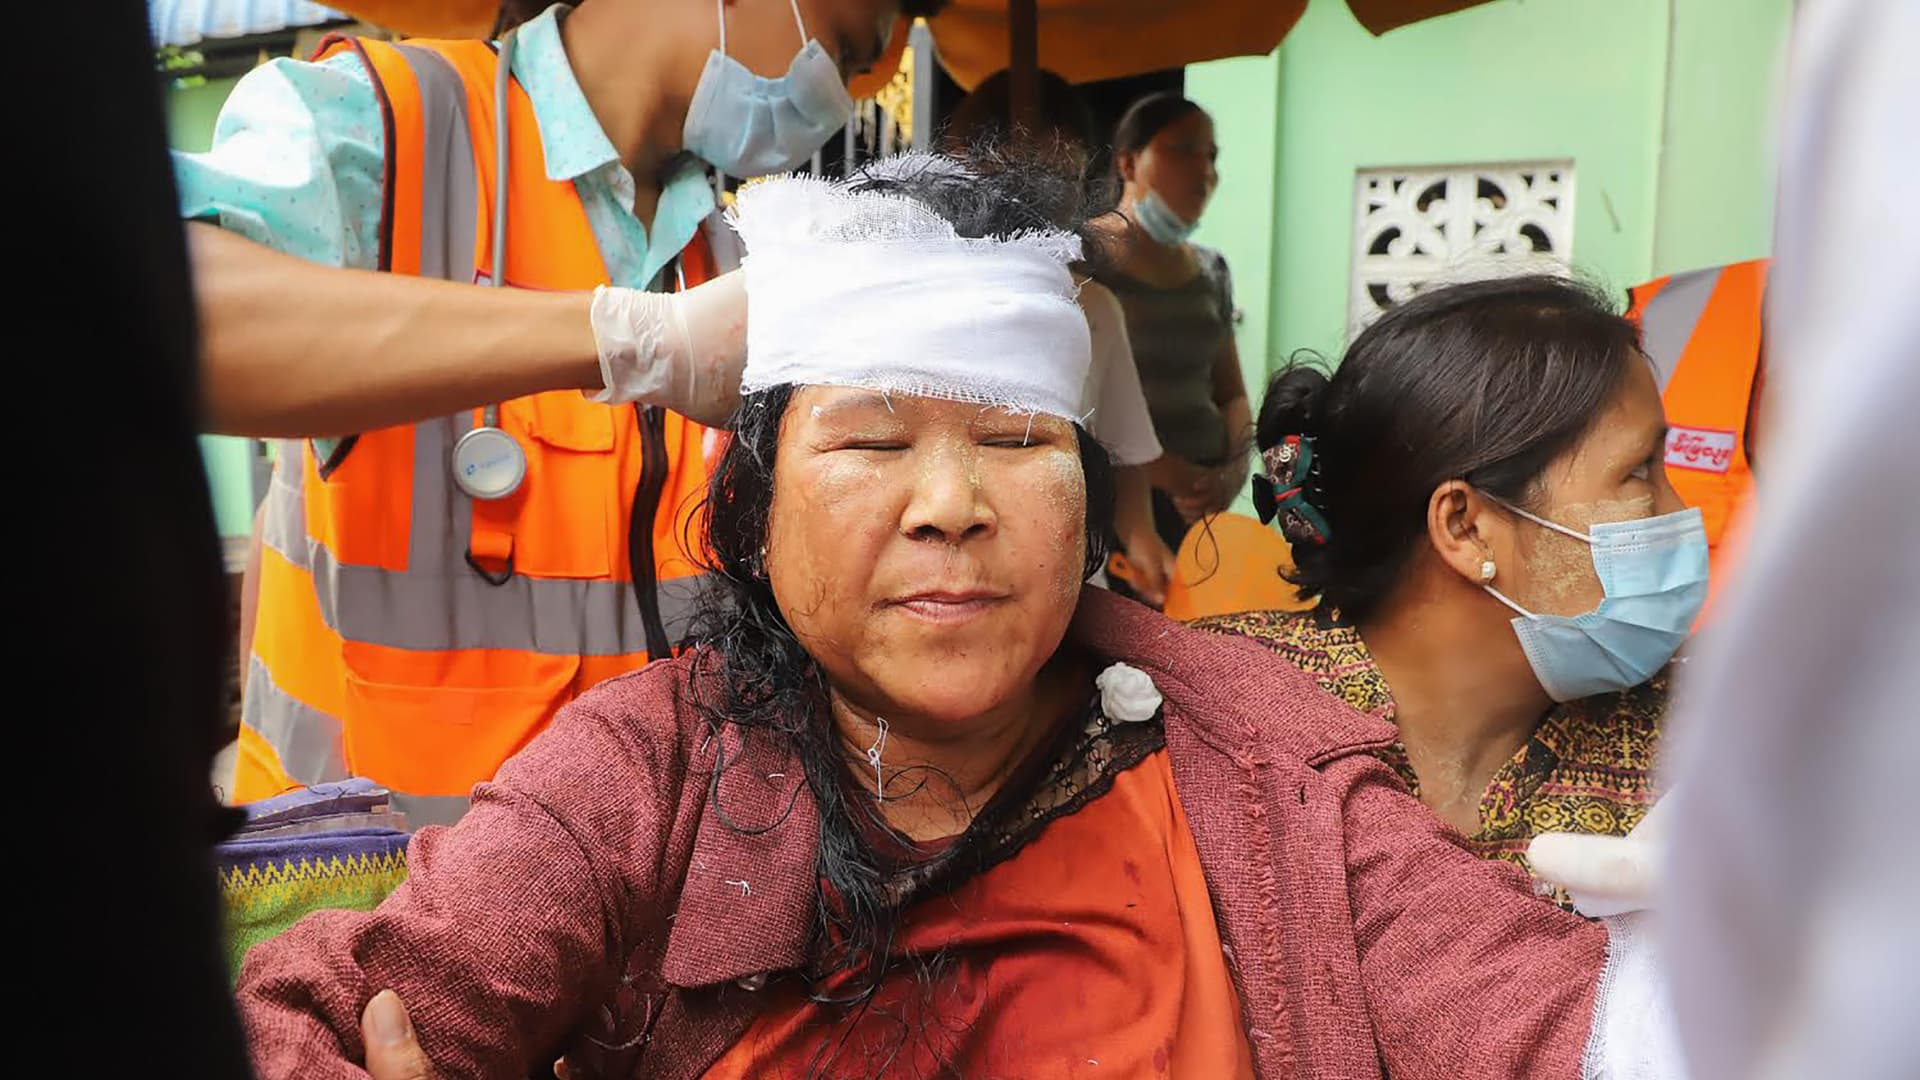 A protester has her head bandaged after being beaten by security forces during a demonstration against the military coup in Mandalay on February 20, 2021.